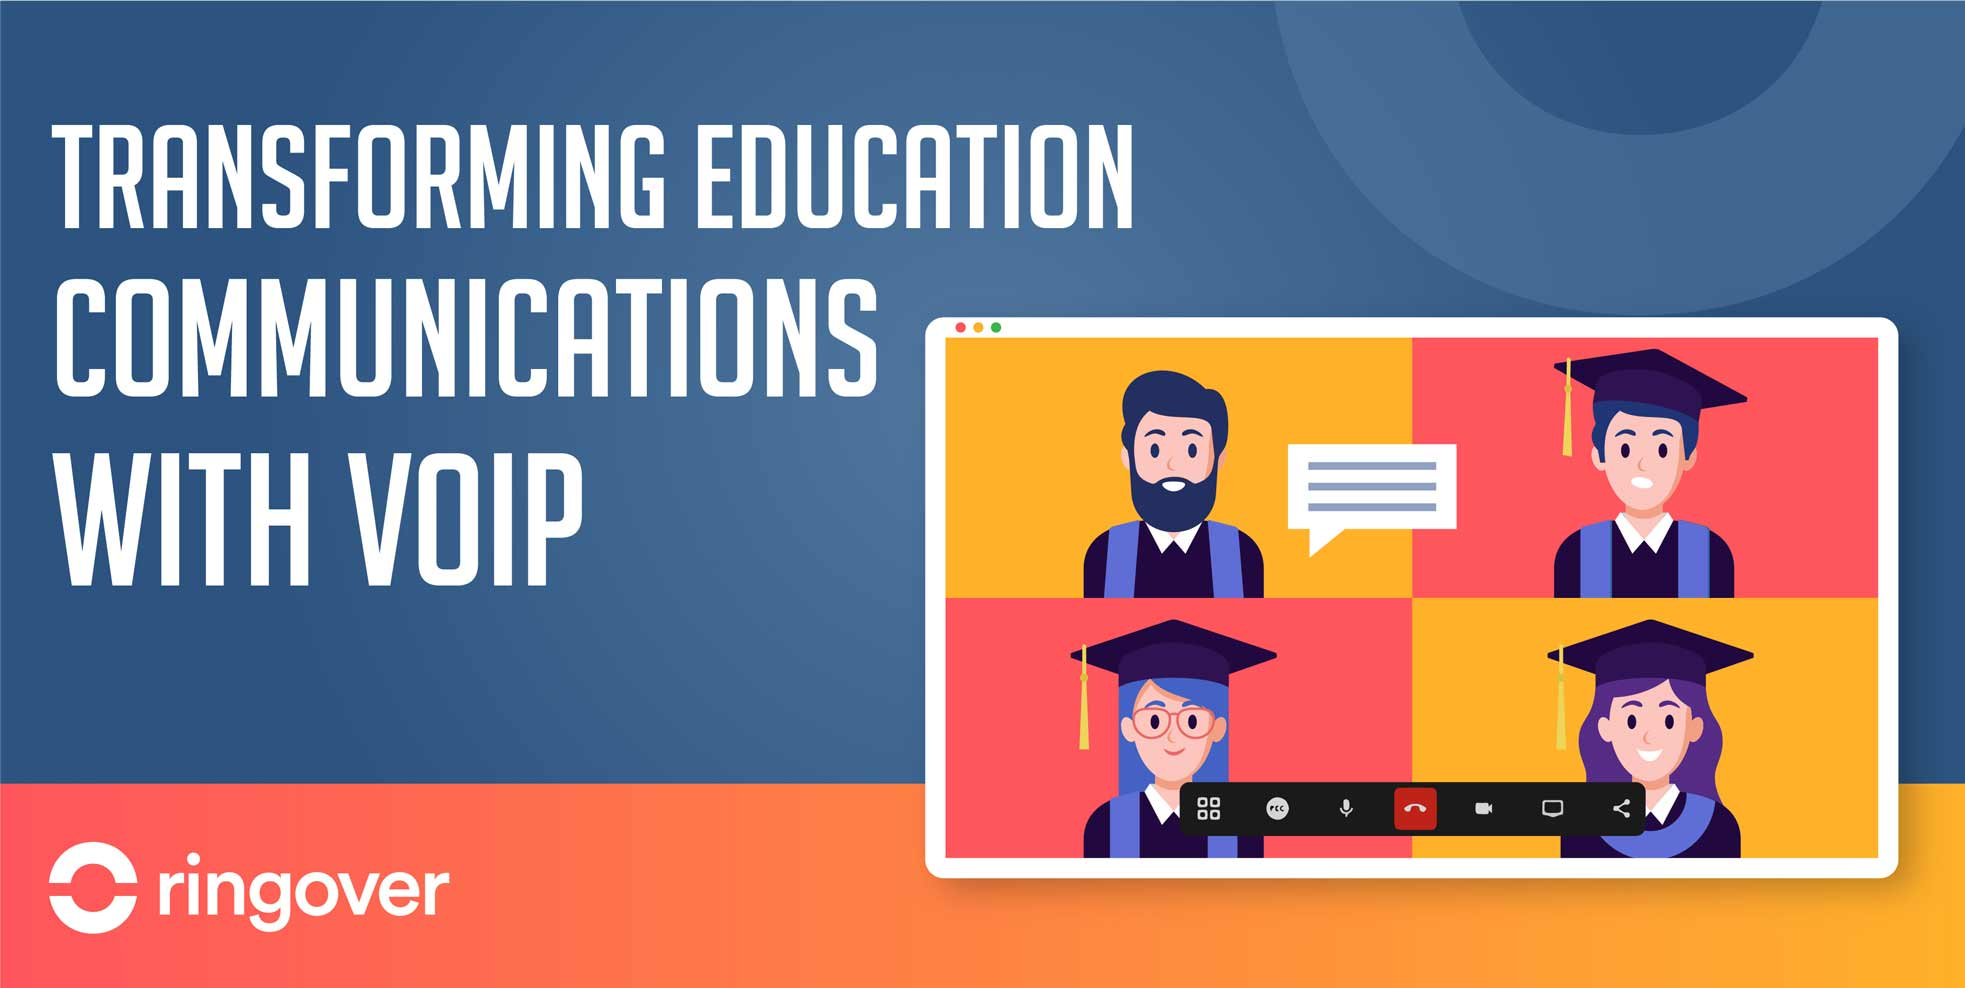 Education Communication VoIP